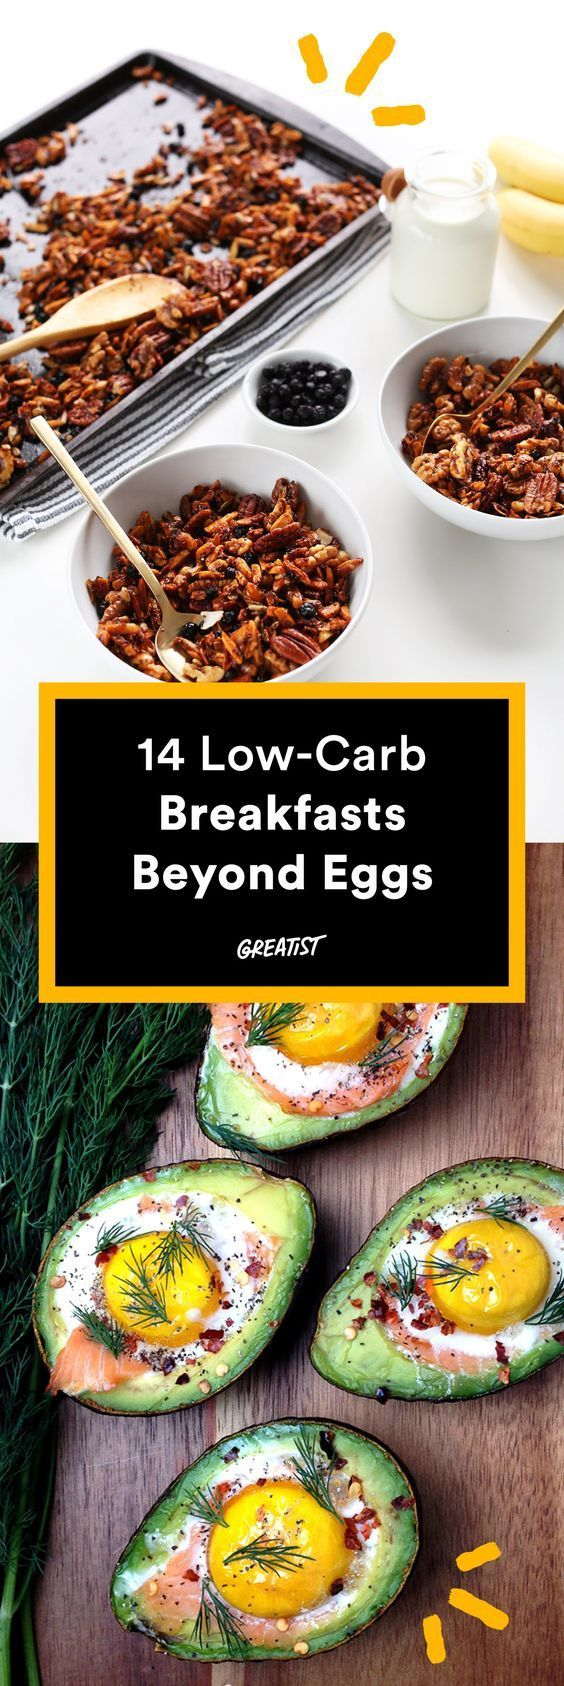 Cutting back on carbs doesn't mean you can't eat bagels oatmeal or pancakes.